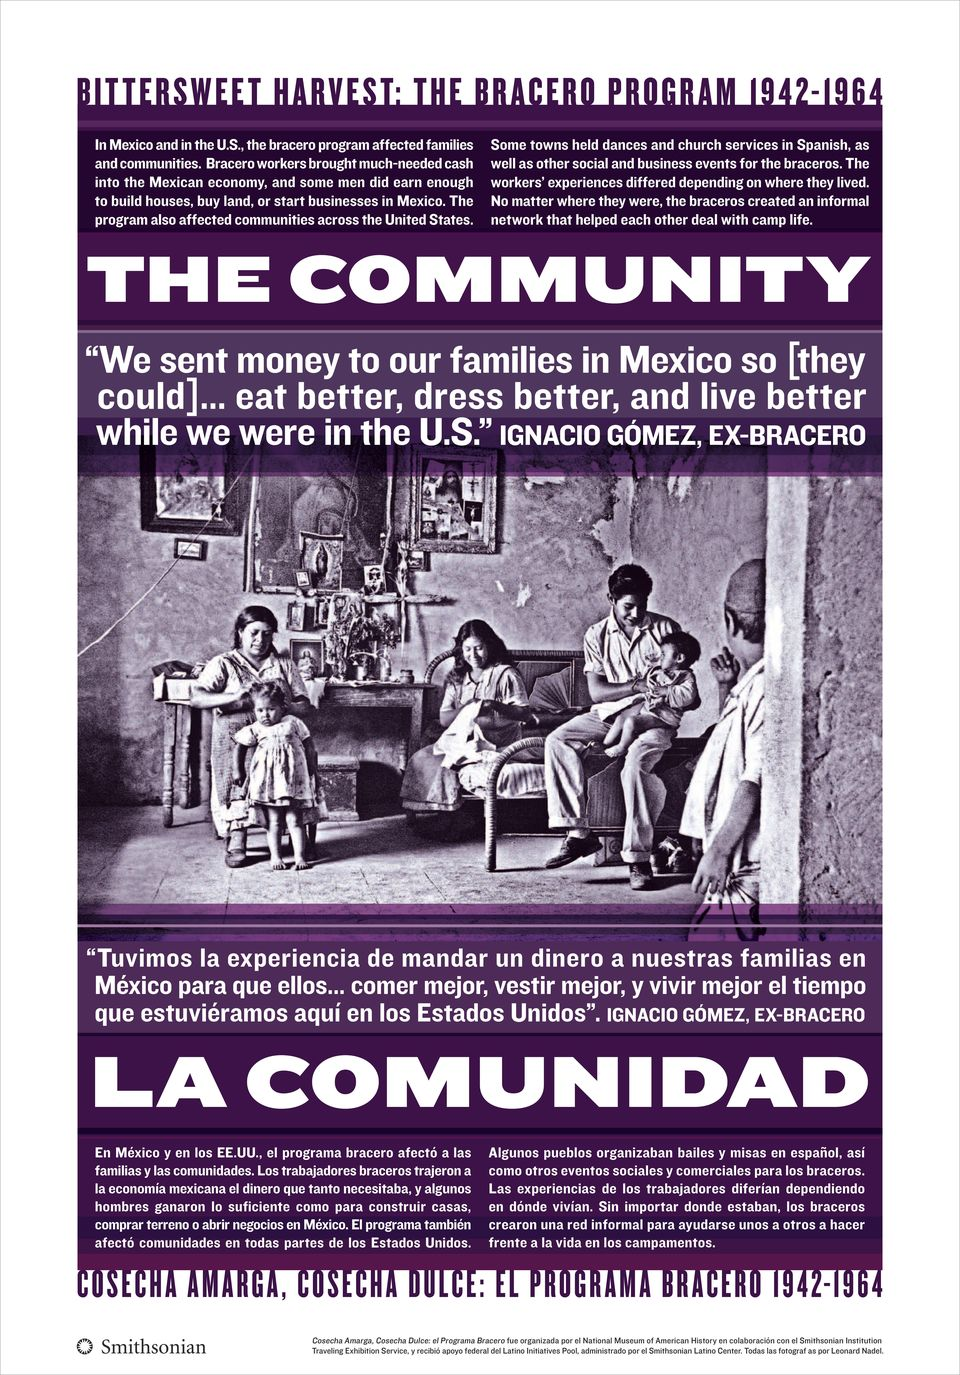 The program also affected communities across the United States. Some towns held dances and church services in Spanish, as well as other social and business events for the braceros.